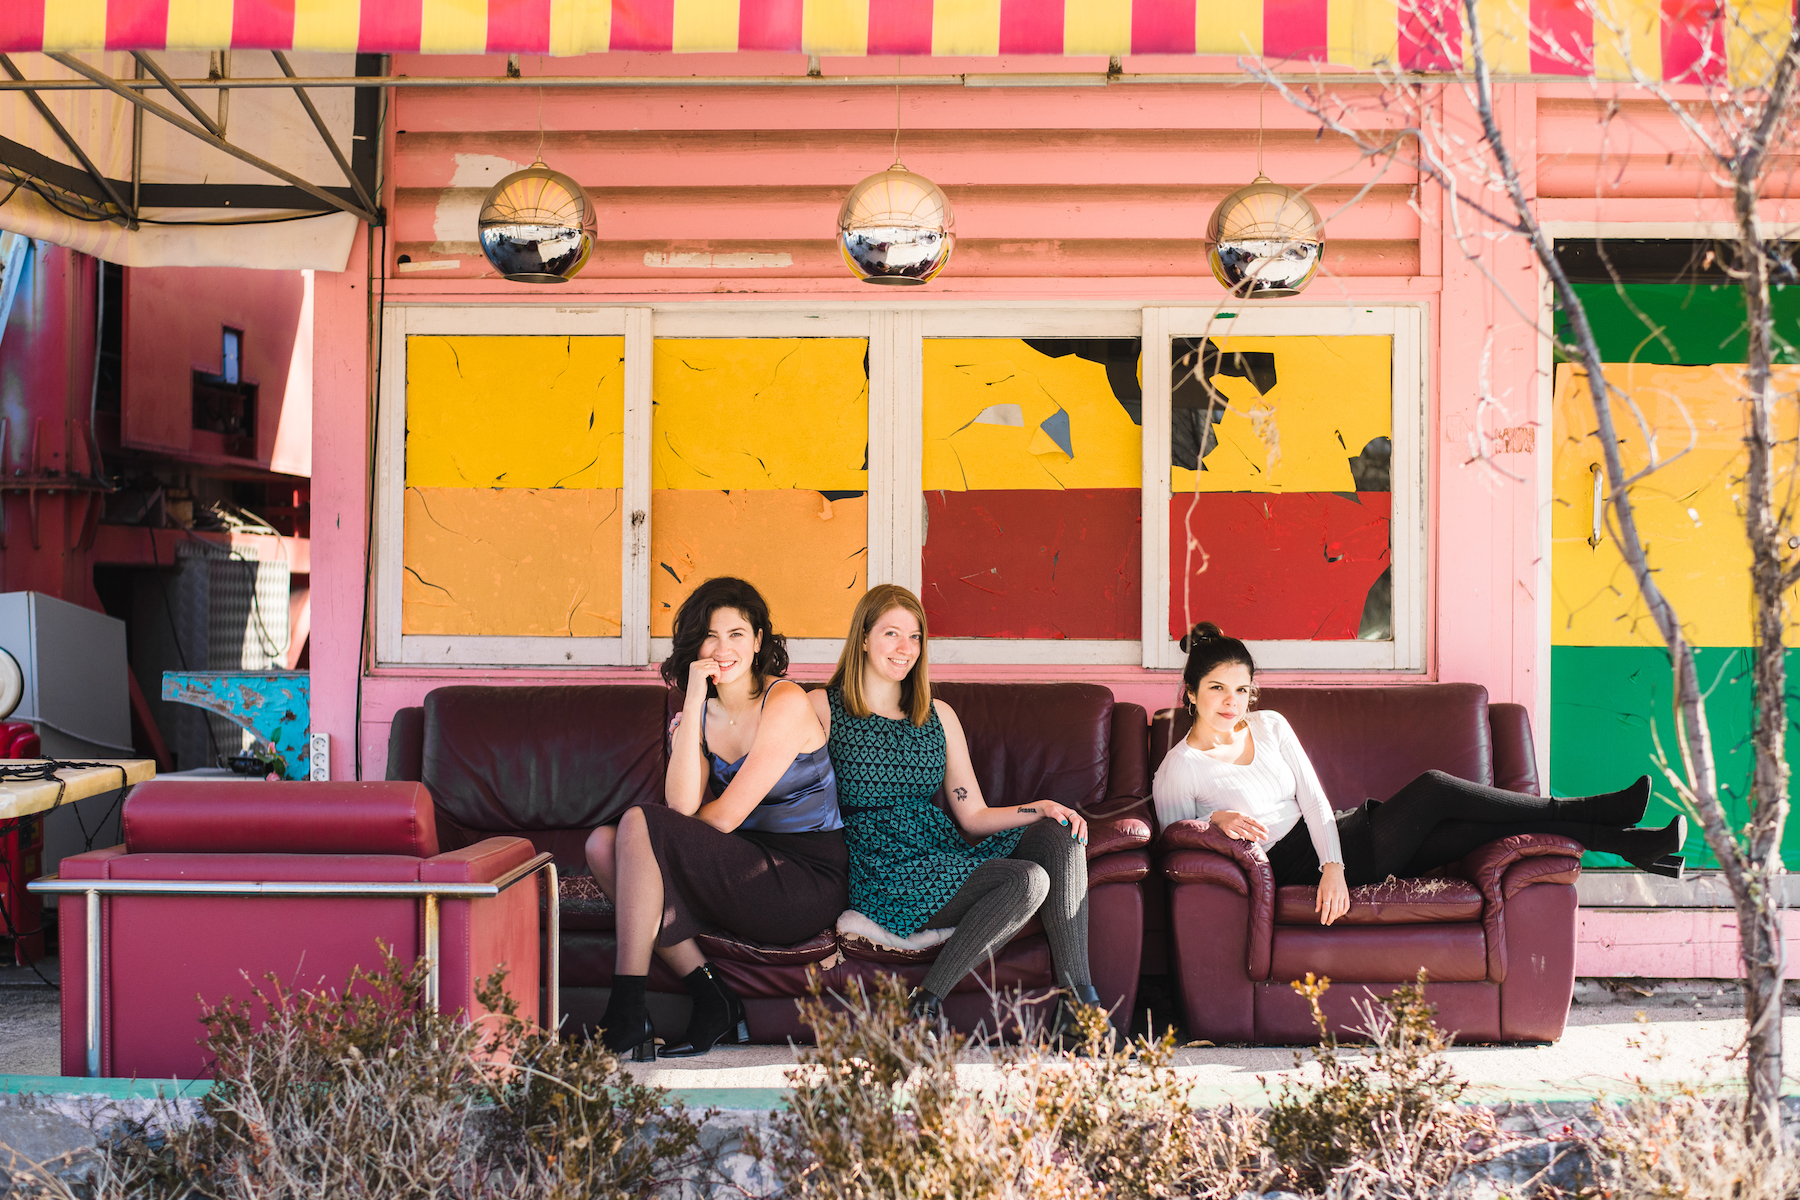 Three well-dressed young women posing on colourful furniture in an abandoned amusement park in Seoul ,South Korea.